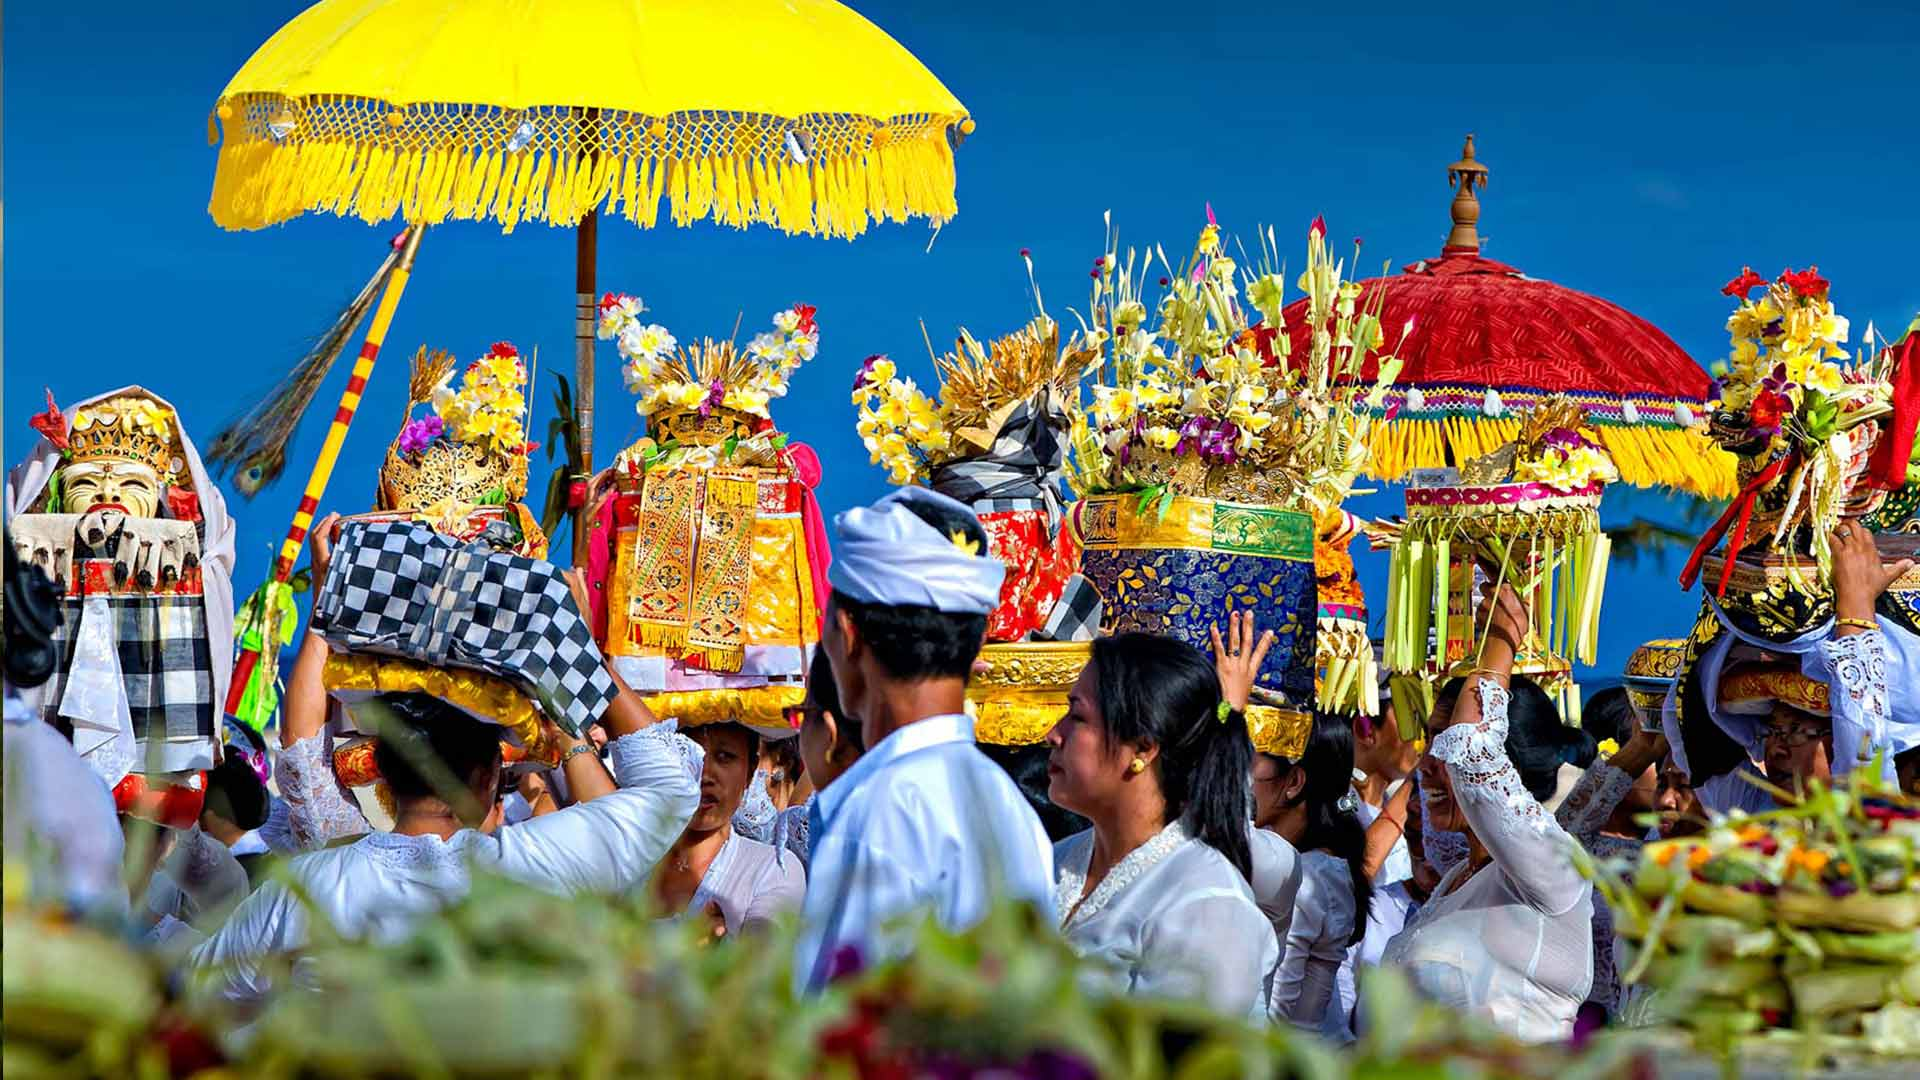 Bali Tourism From China To Rise In 2015